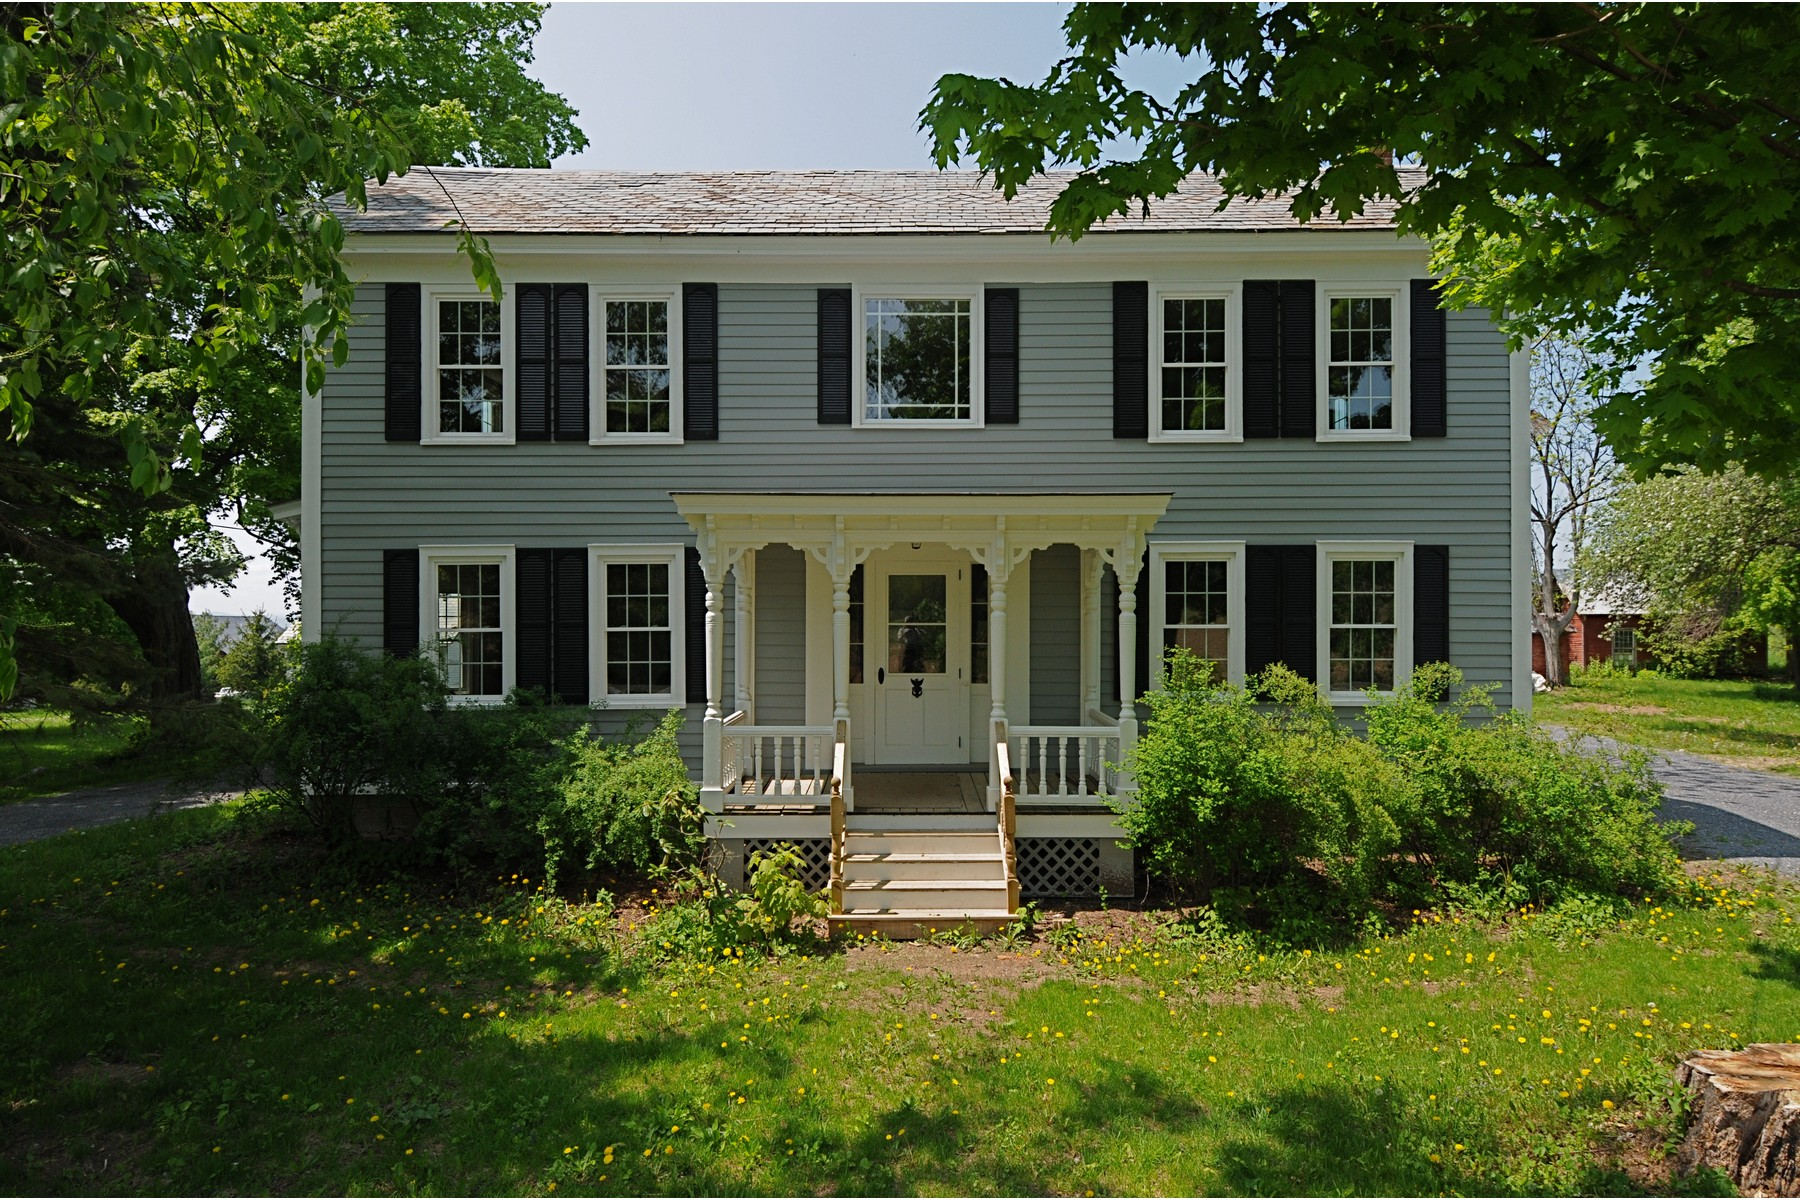 Single Family Home for Sale at Renovated Historic Farmhouse in Vermont 2346 Greenbush Rd Charlotte, Vermont 05445 United States